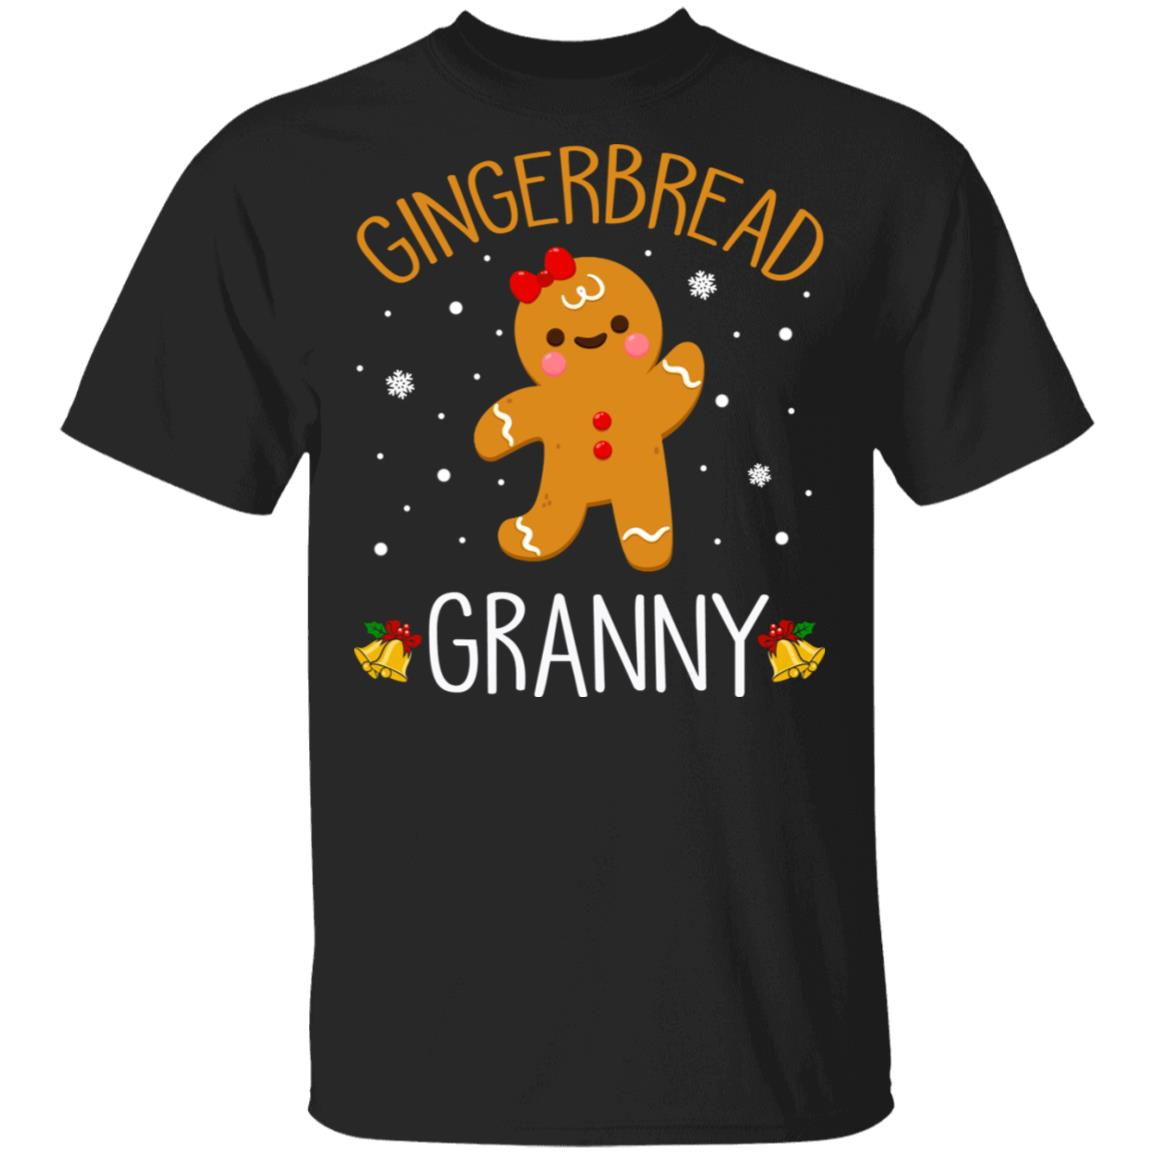 Xmas Gingerbread Men Granny Christmas Family Unisex Short Sleeve